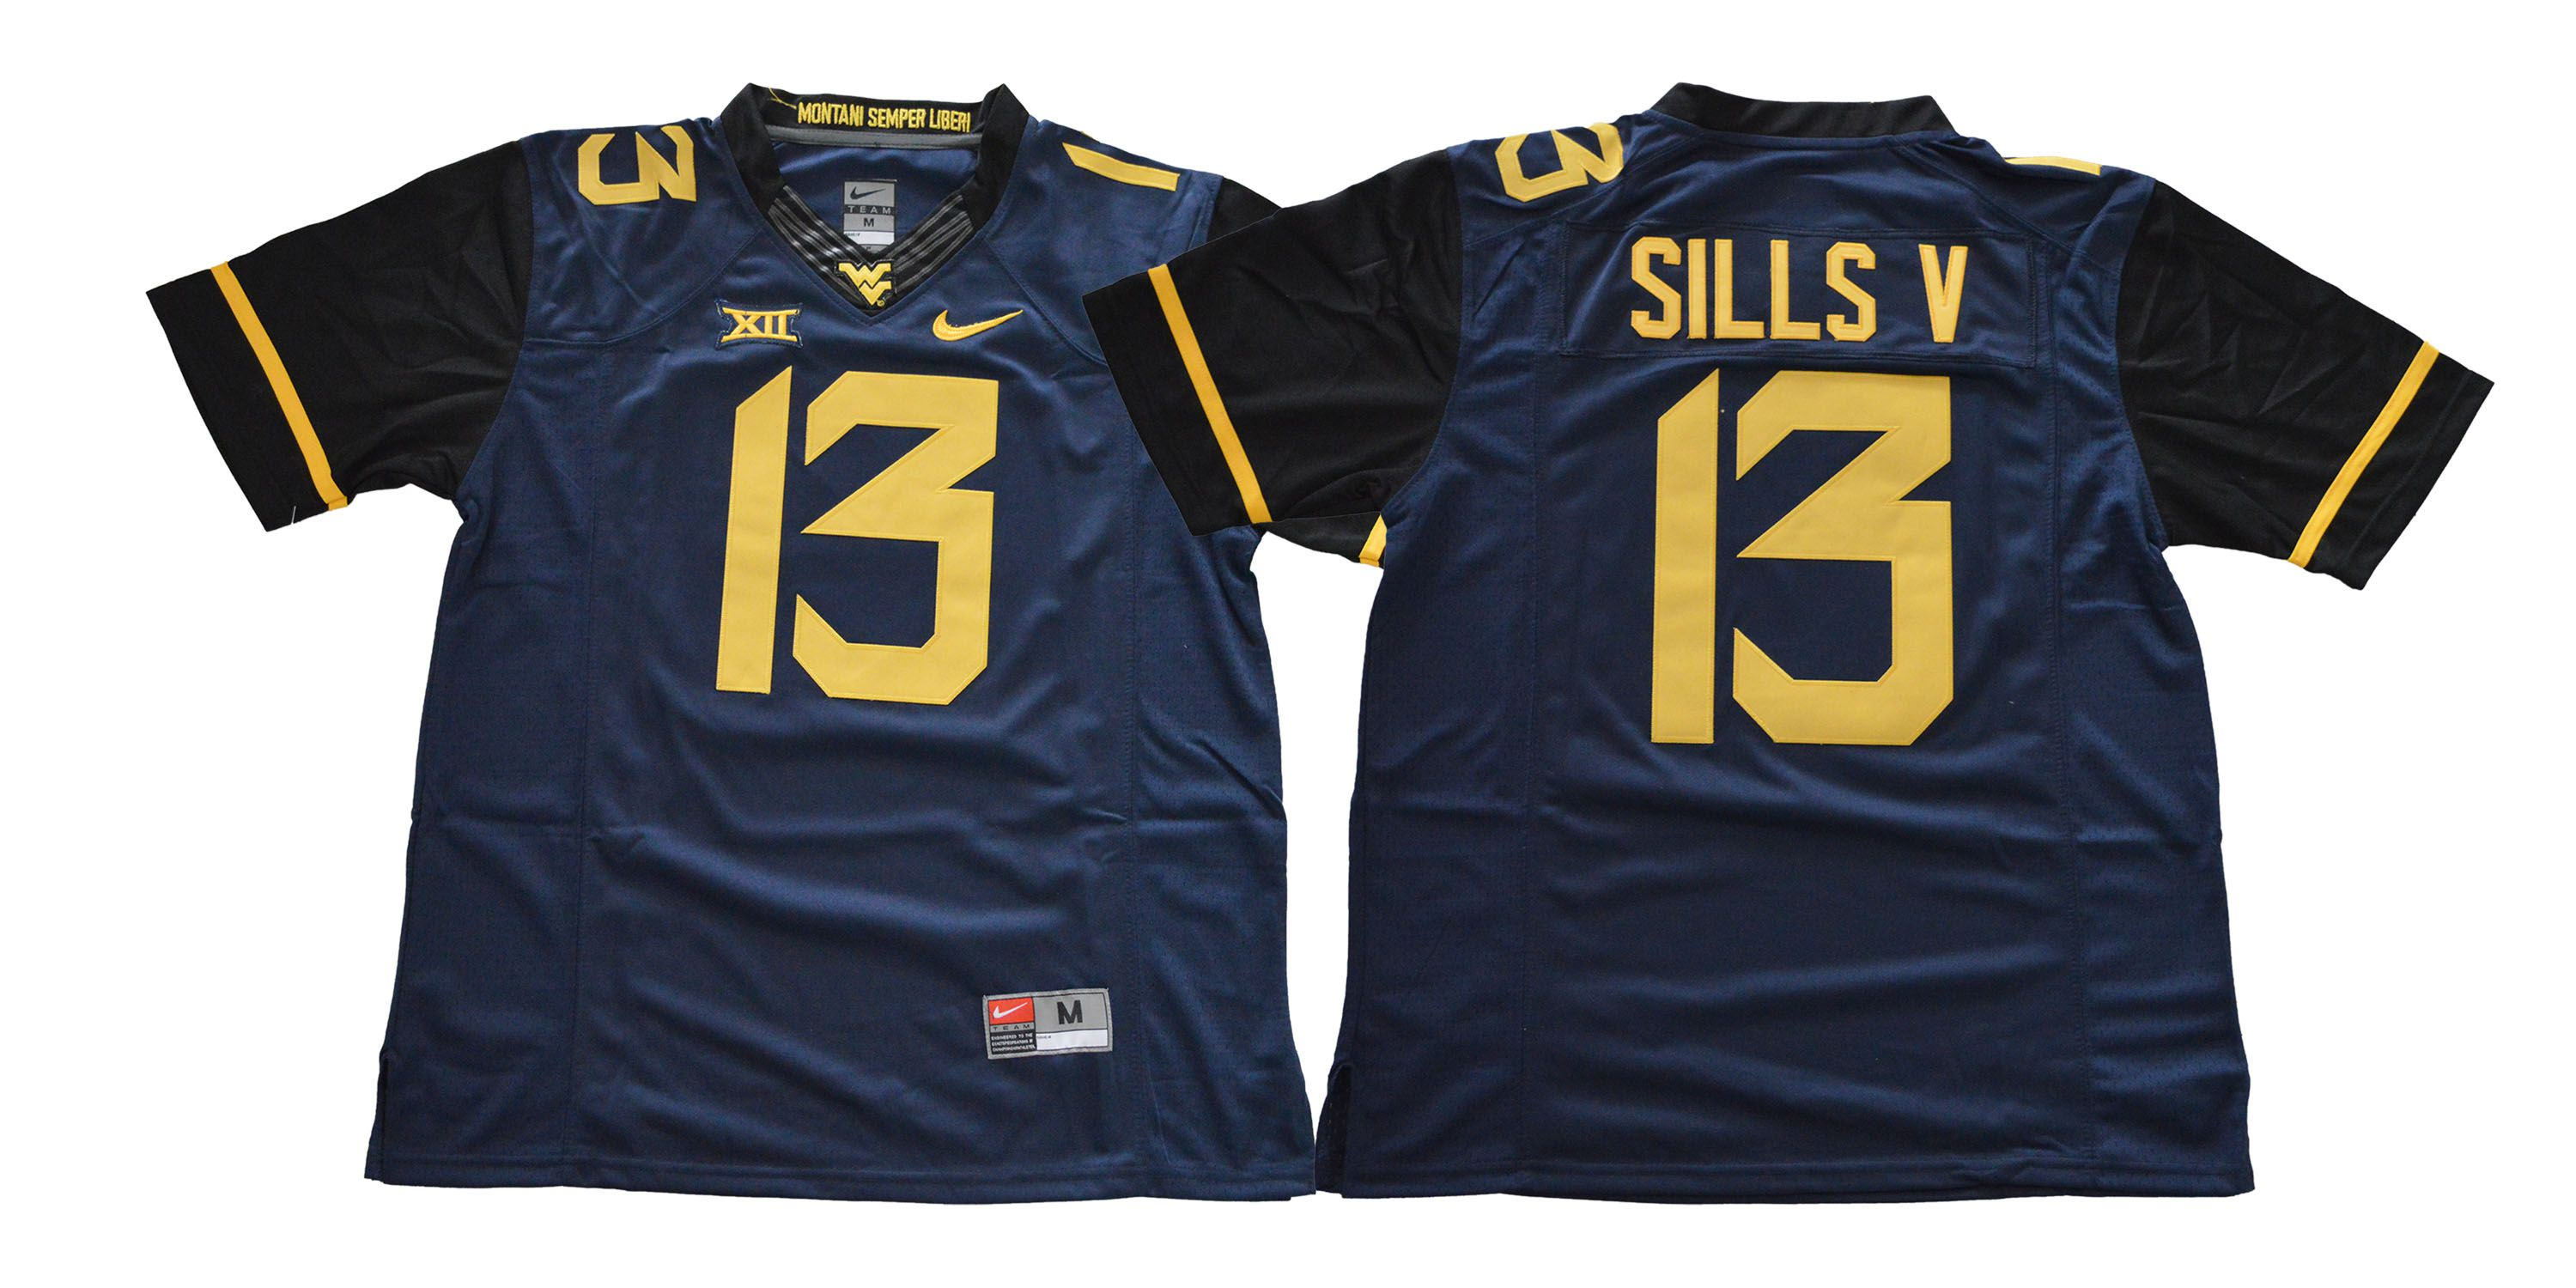 Men West Virginia Mountaineers 13 Sills v Blue NCAA Jerseys